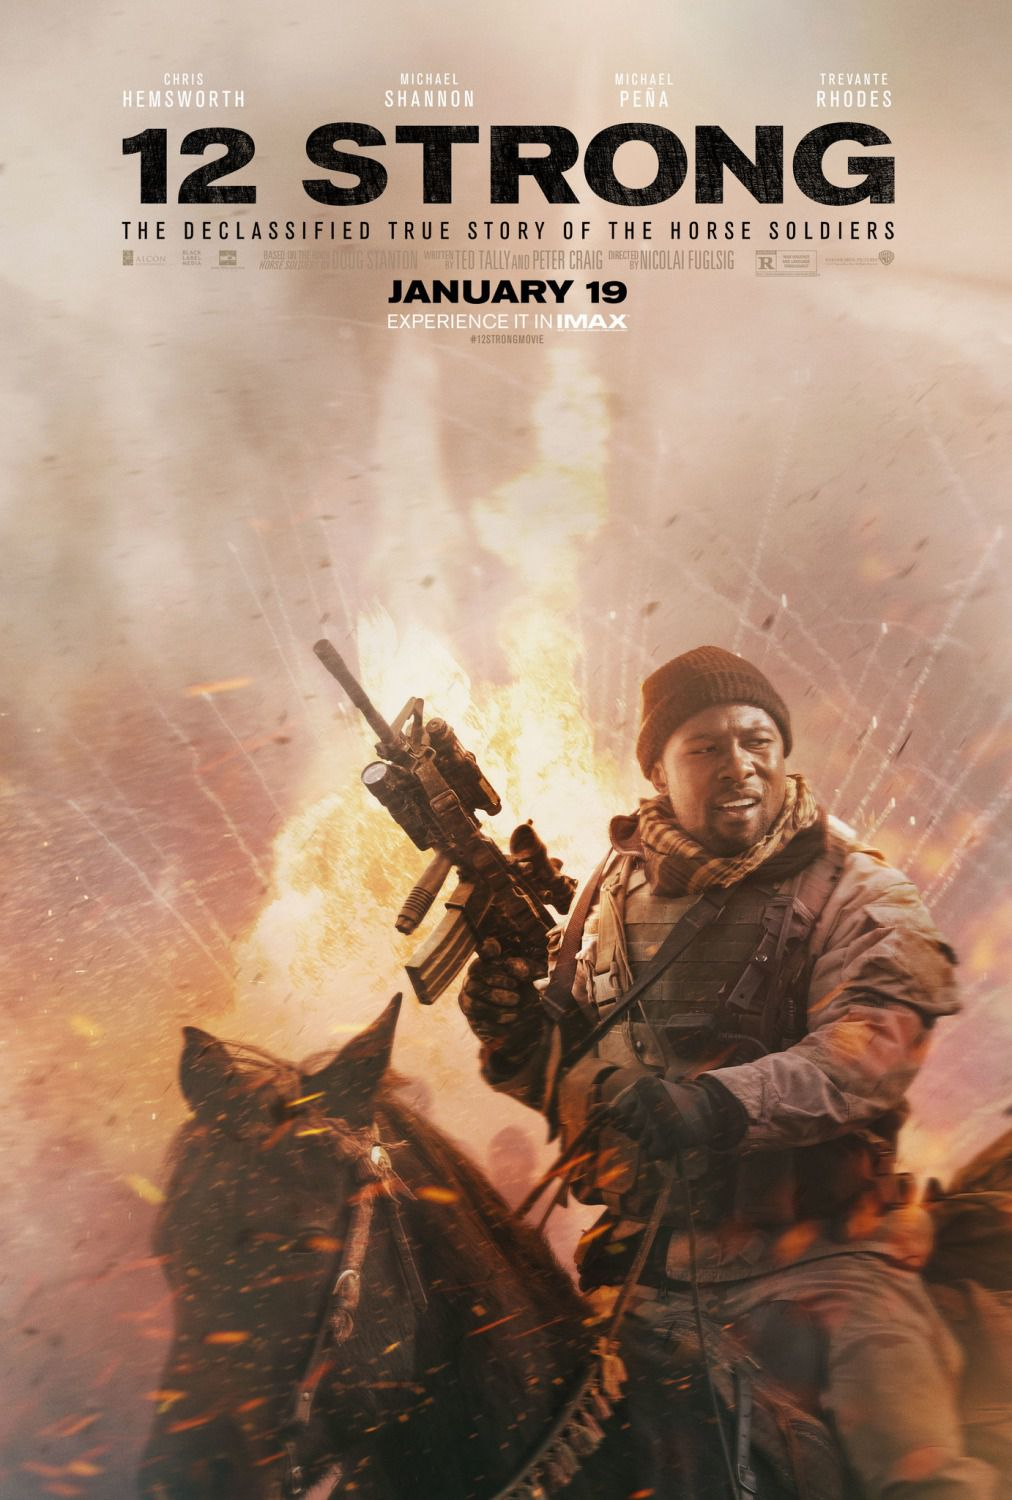 12 Strong the Declassified True Story of the Horse Soldiers Trevante Rhodes